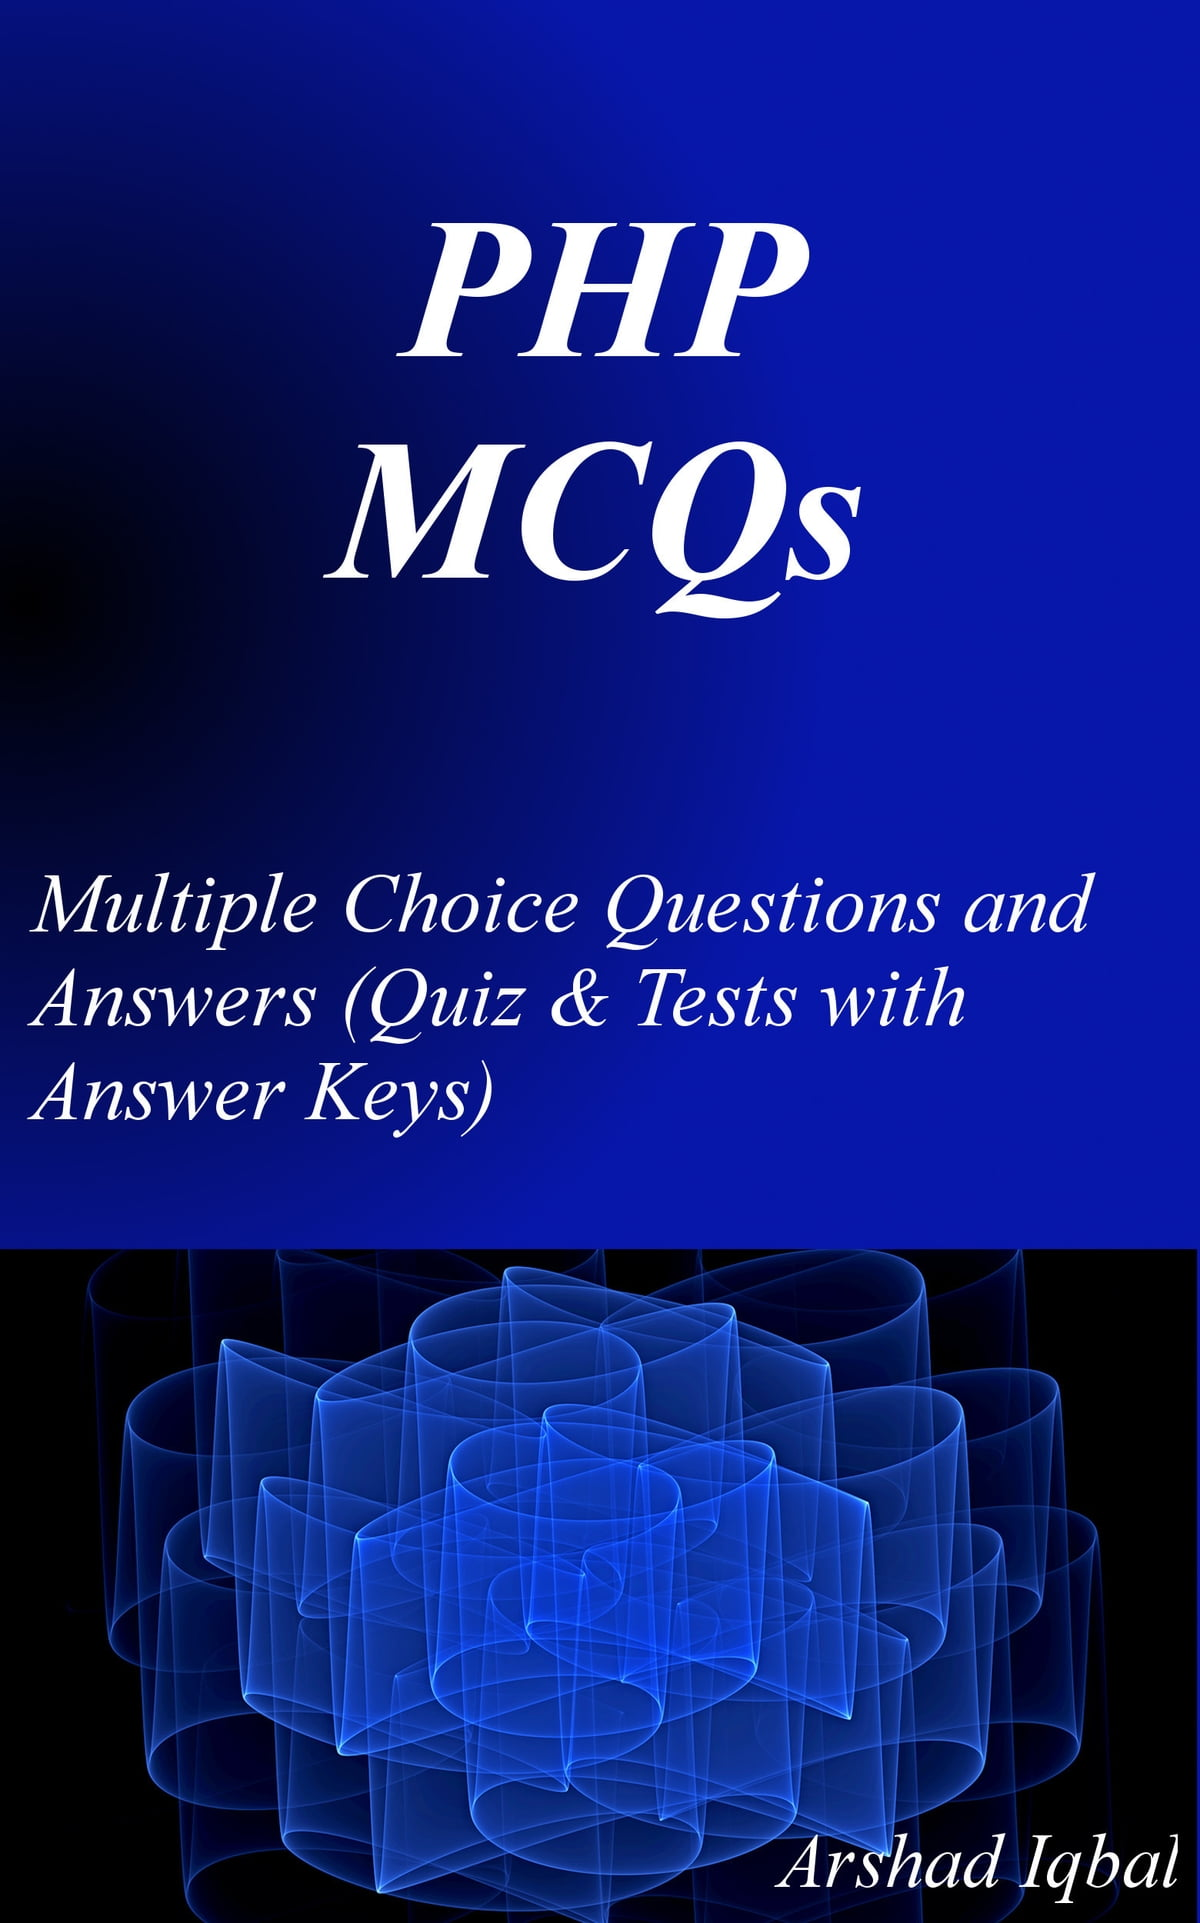 Php Mcqs Multiple Choice Questions And Answers Quiz Amp Tests With Answer Keys Ebook By Arshad